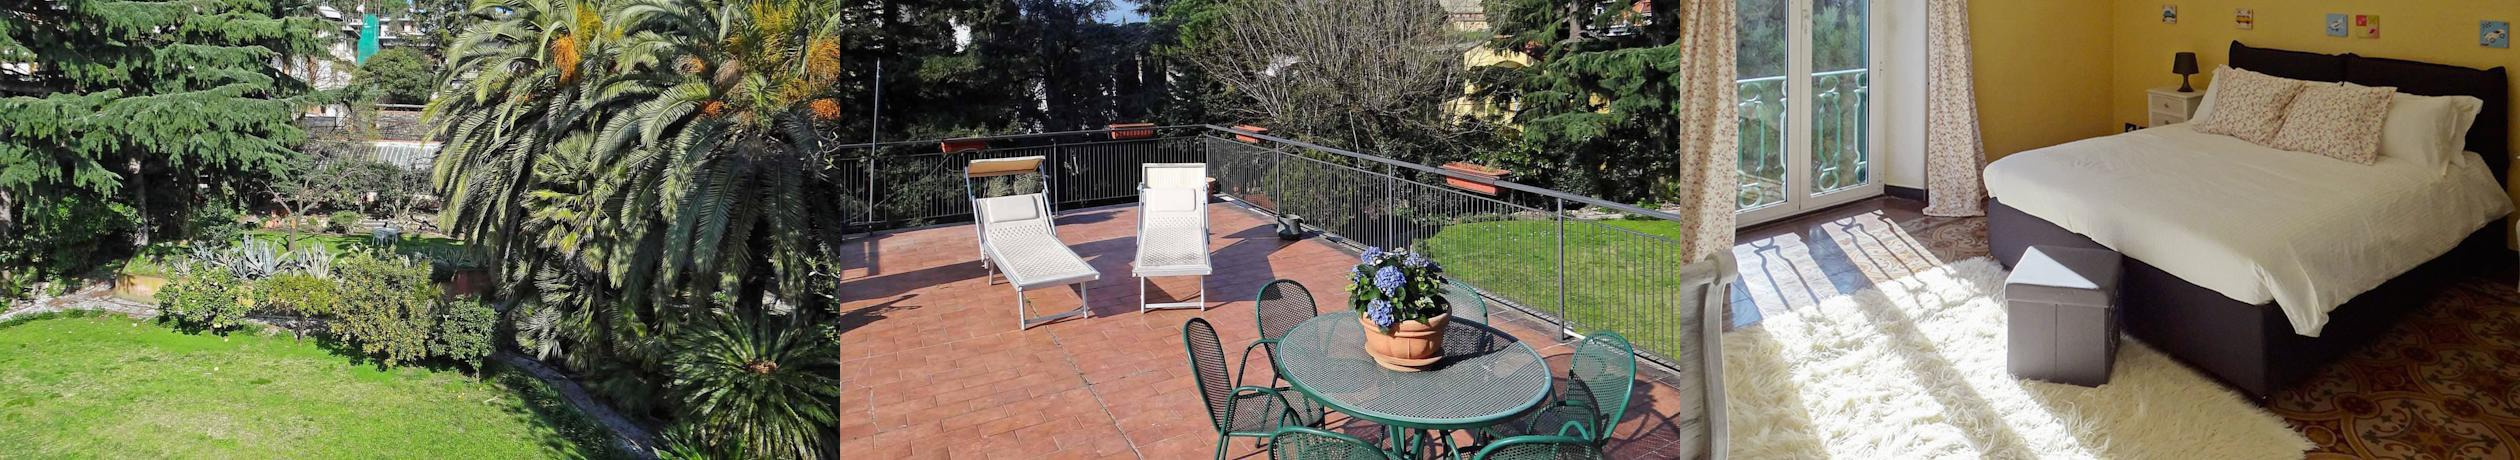 bed and breakfast savona